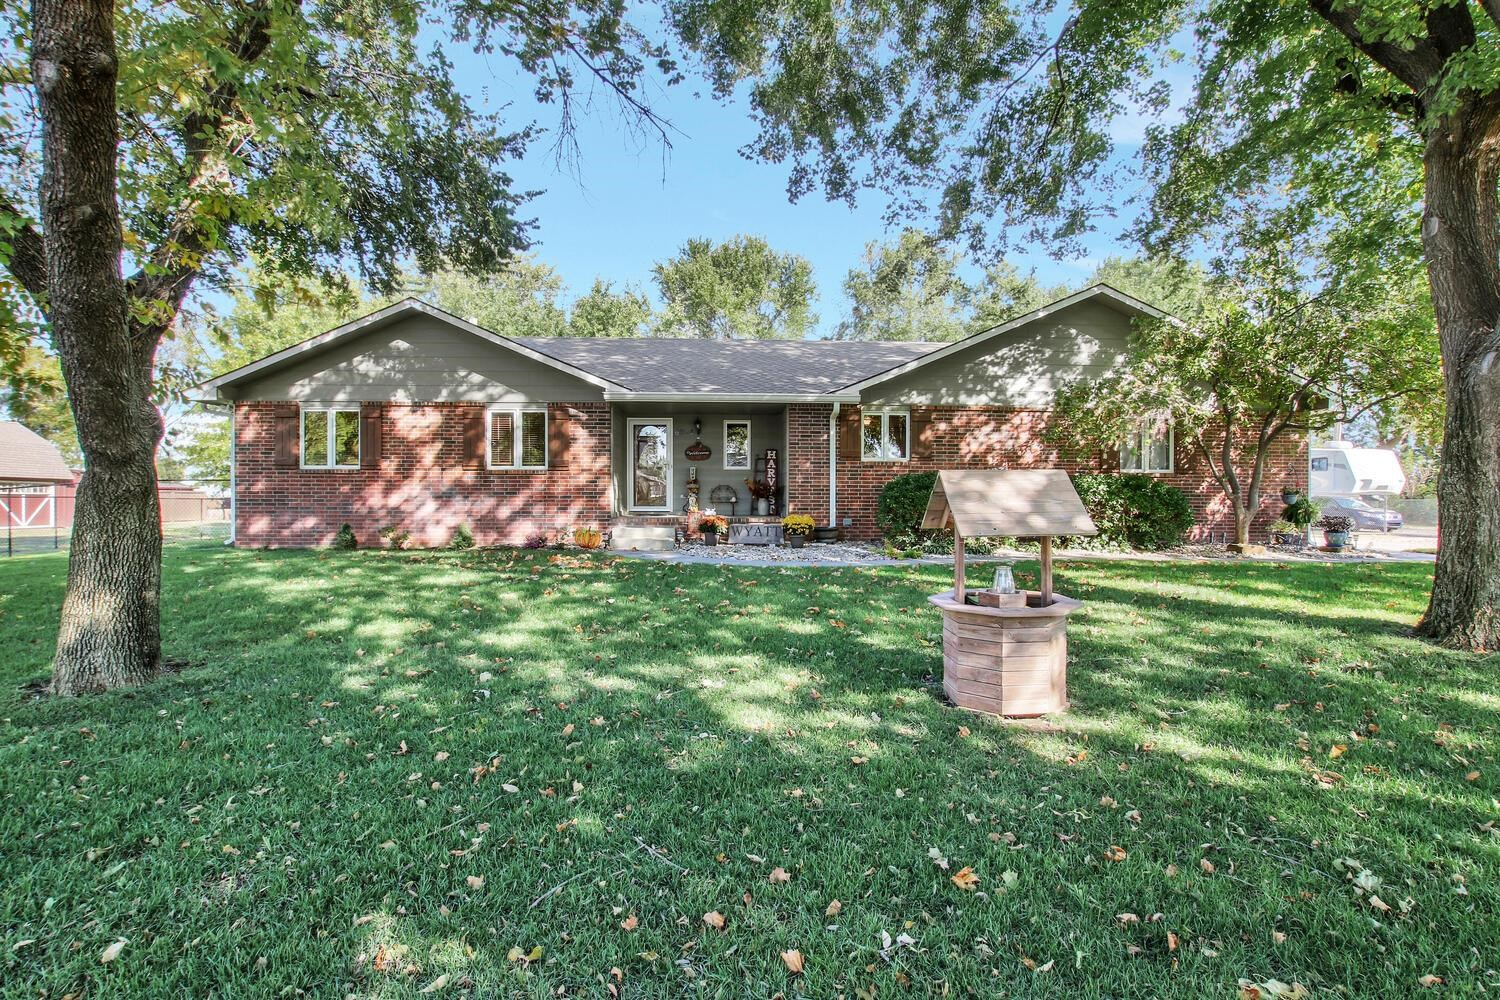 Beautiful 3BR 3BA home located on almost half acre lot in well desired Prospect Park addition in Hay